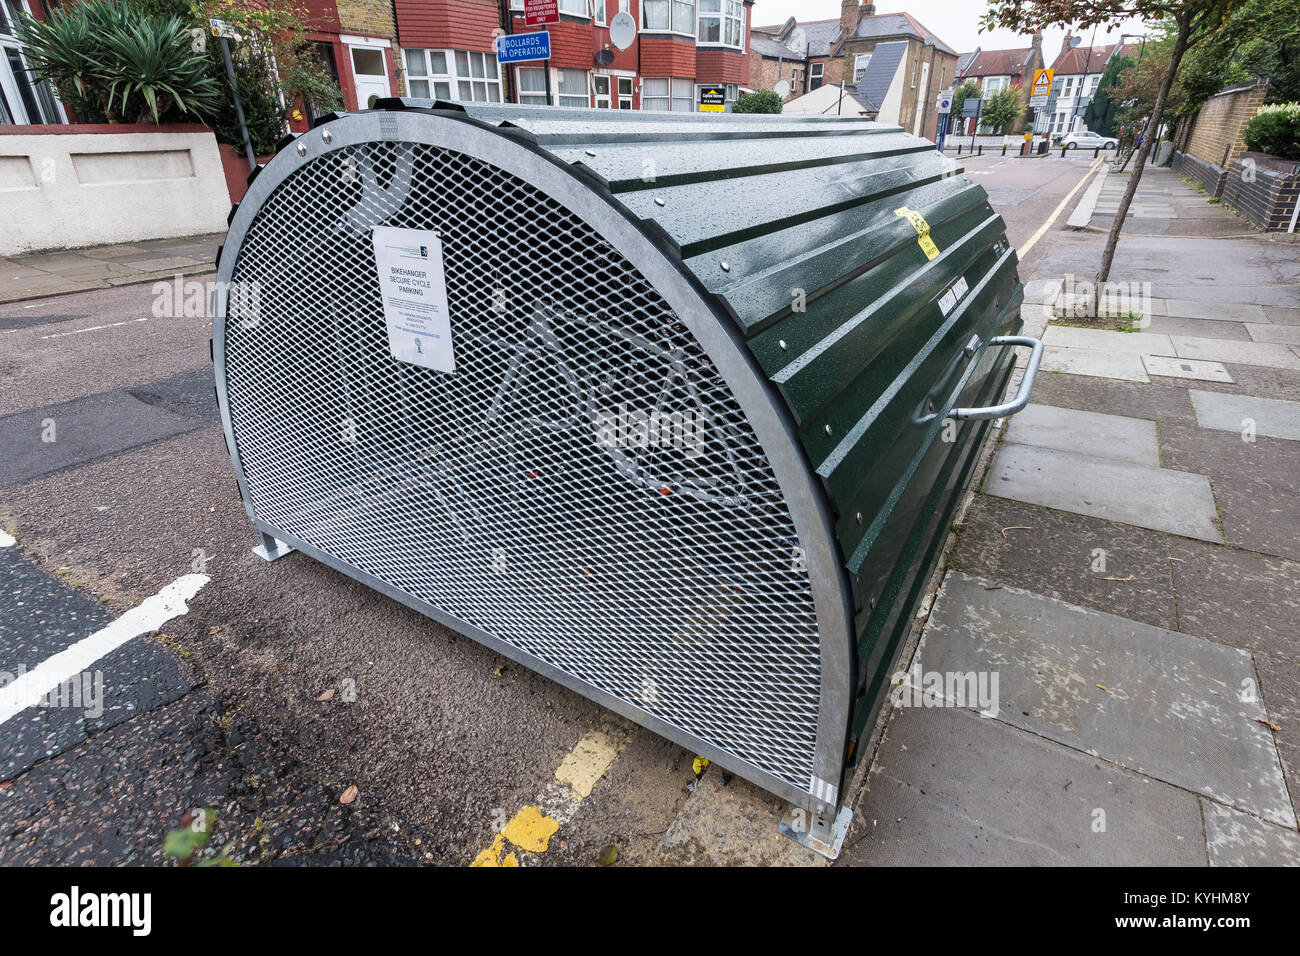 Secure bikehanger cycle parking supplied by The Gardens Residents Association, London Borough of Haringey, London - Stock Image